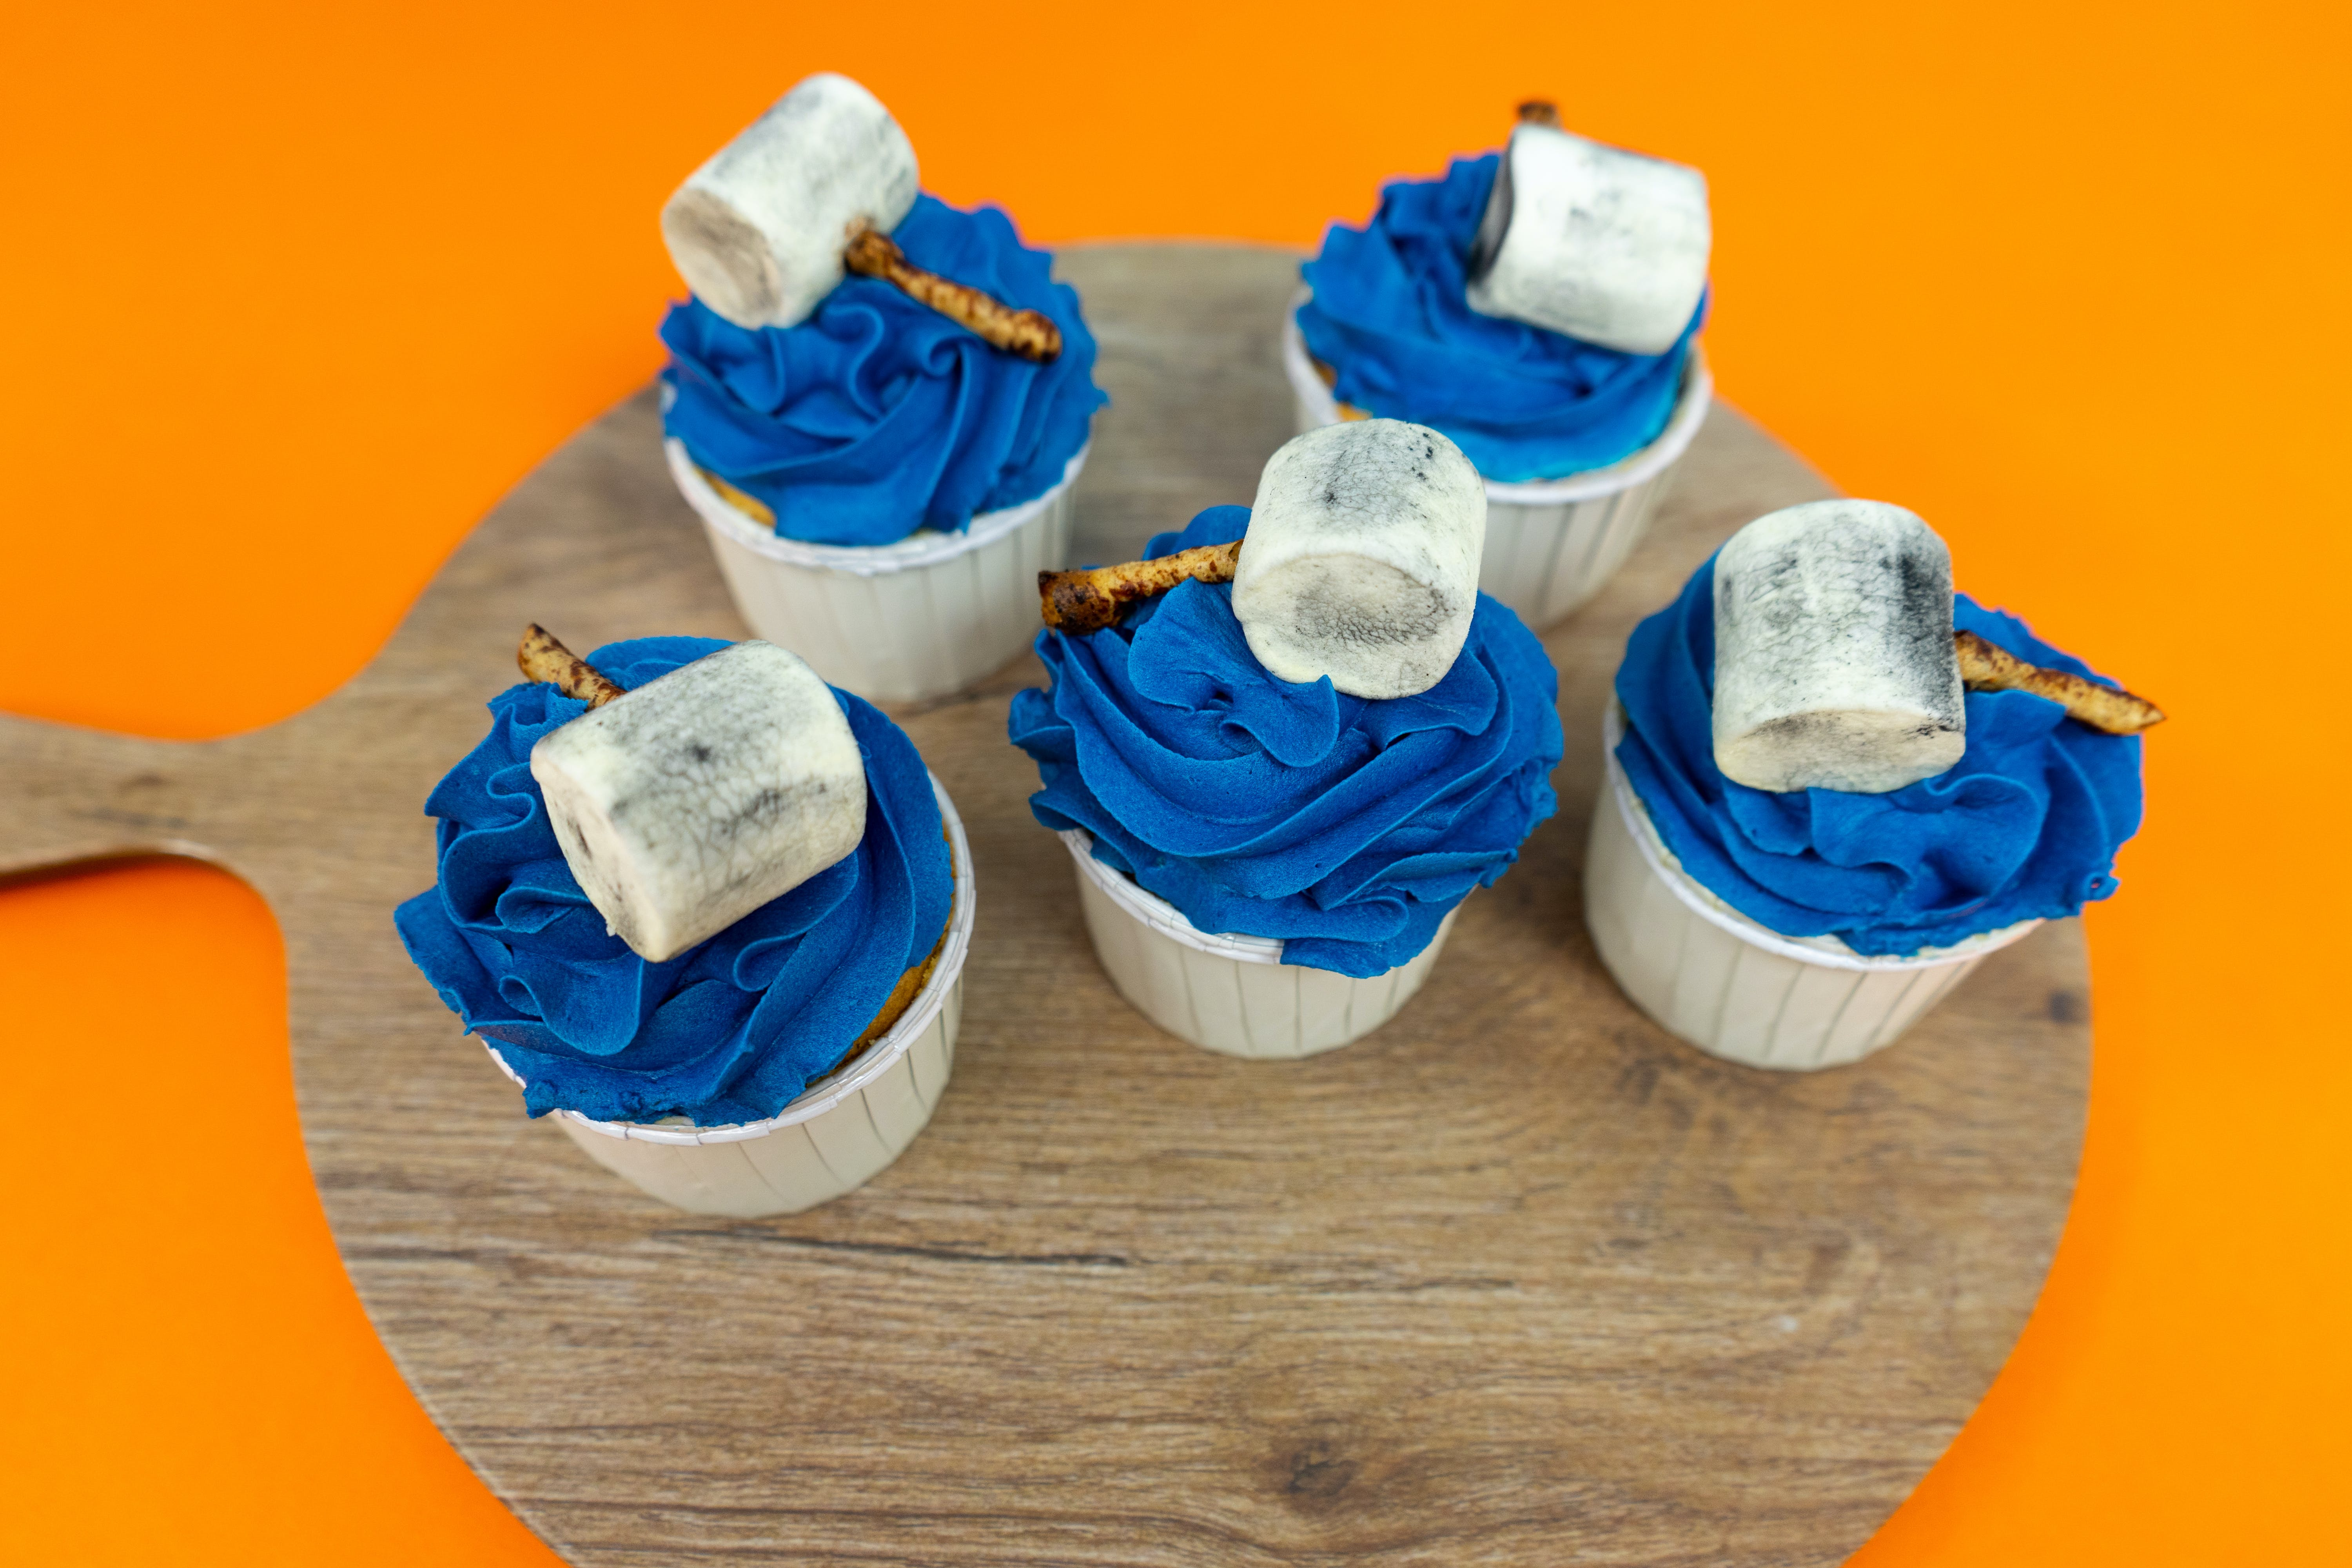 The Mighty Thor Cupcakes